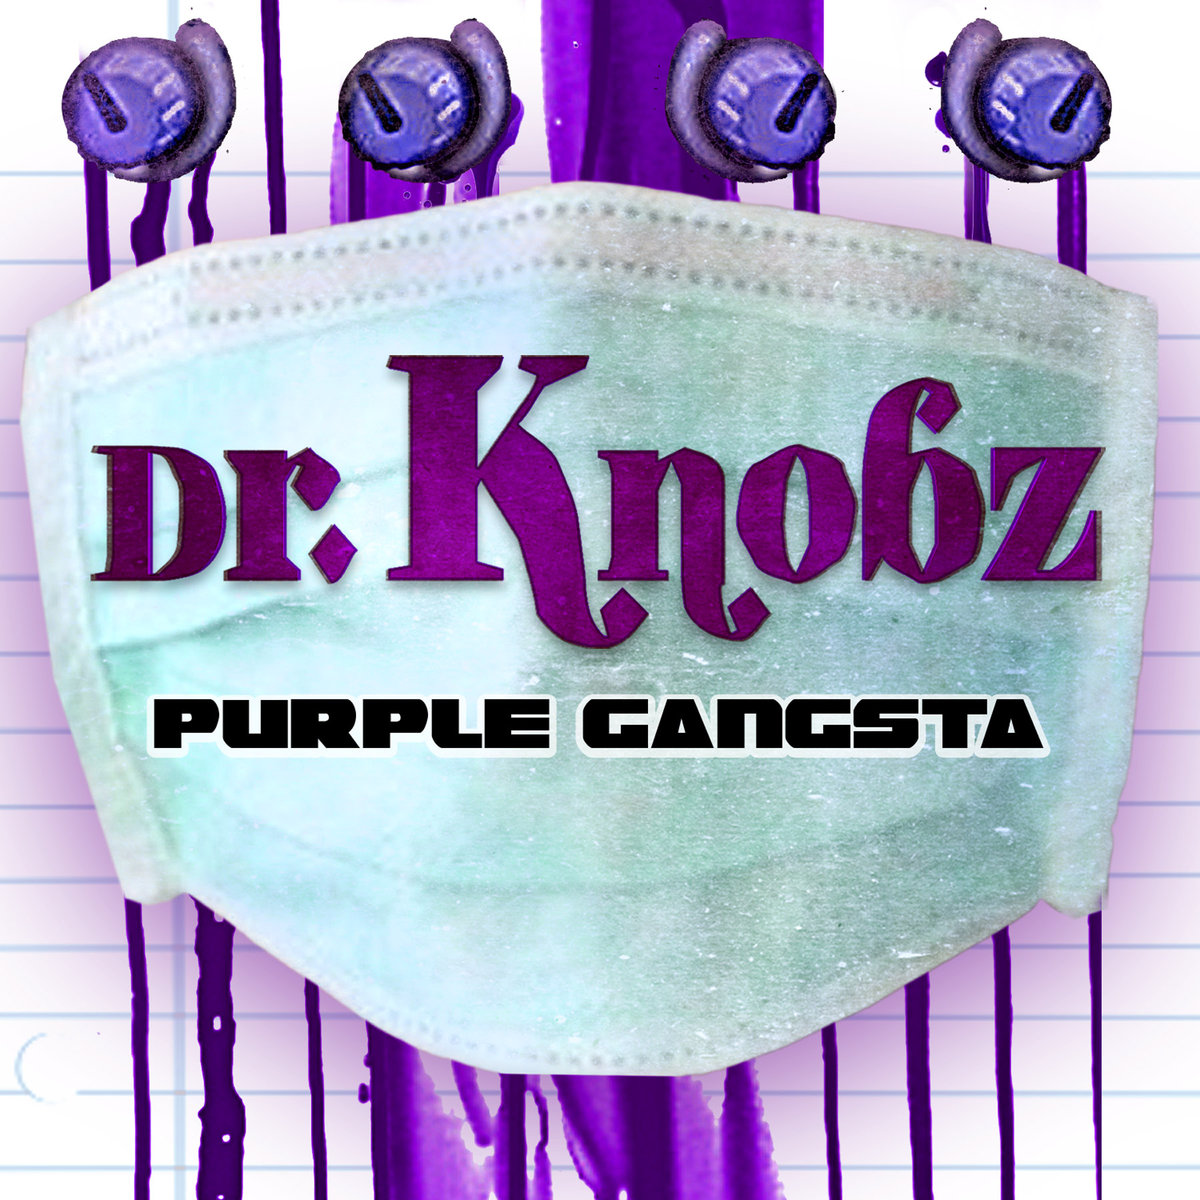 Dr. Knobz - Crunk Strut (Blackheart & Skulltrane Remix) @ 'Purple Gangsta' album (electronic, dubstep)